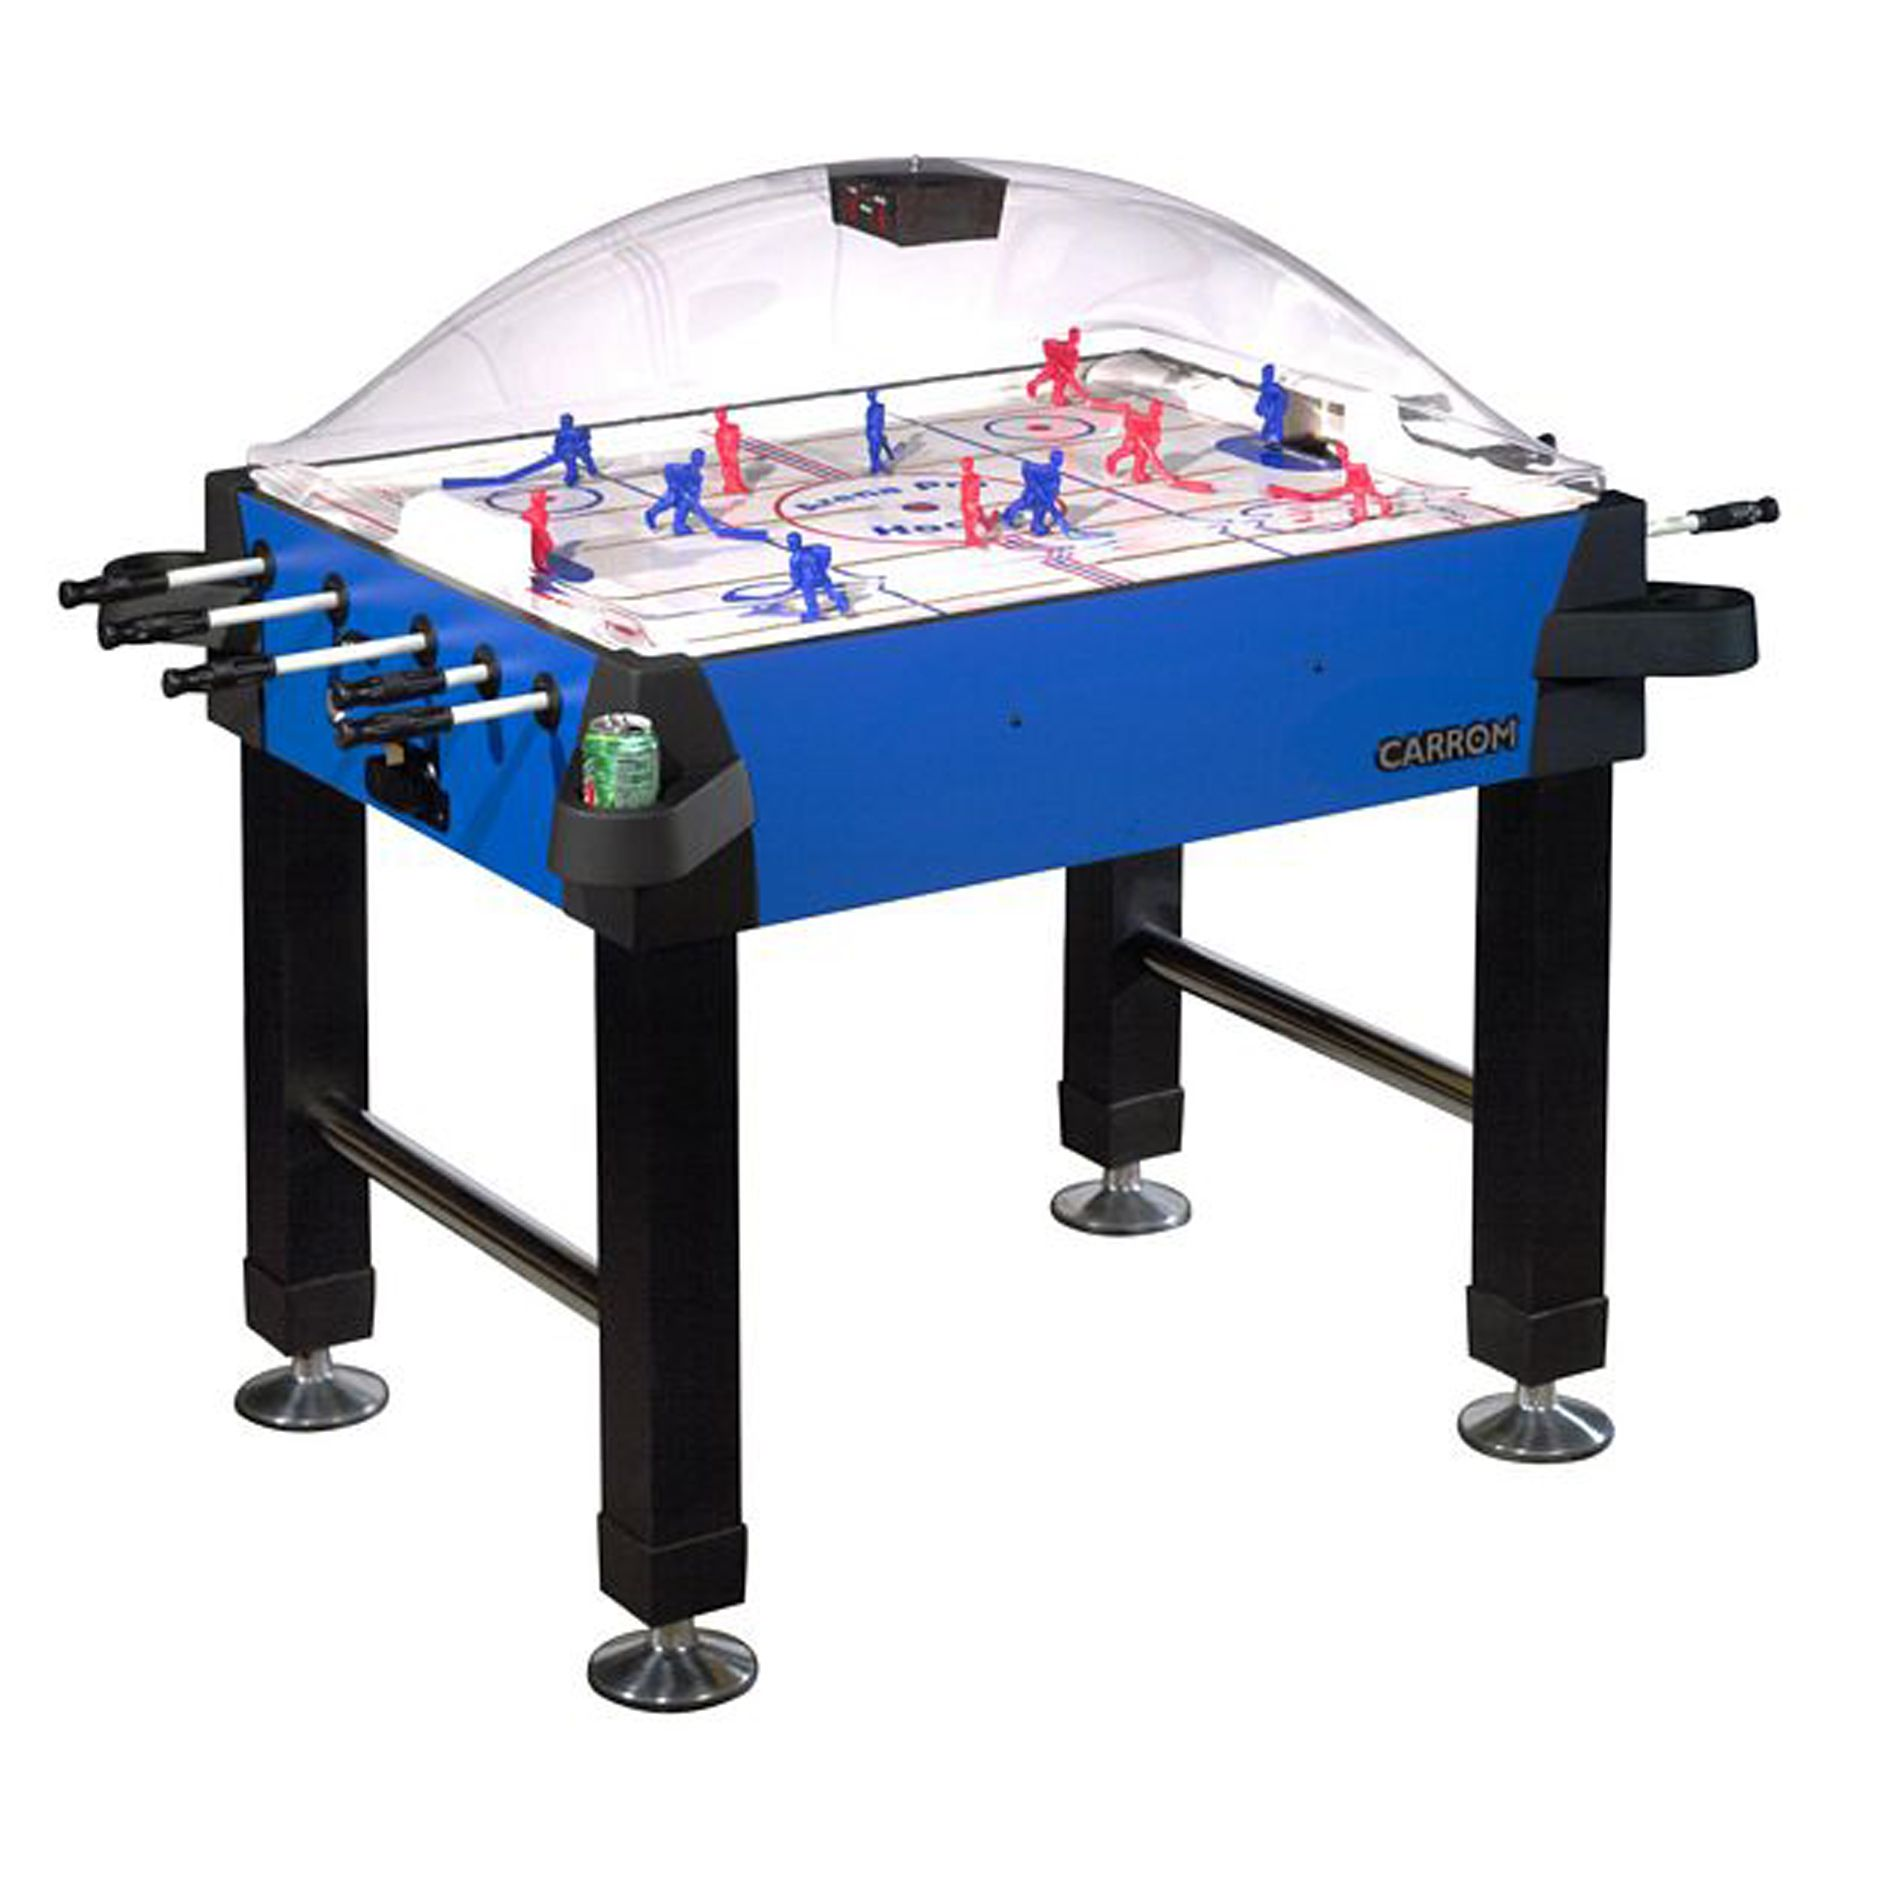 Carrom Signature Stick Hockey Table with Legs - Blue PartNumber: 00623818000P KsnValue: 00623818000 MfgPartNumber: 435.00